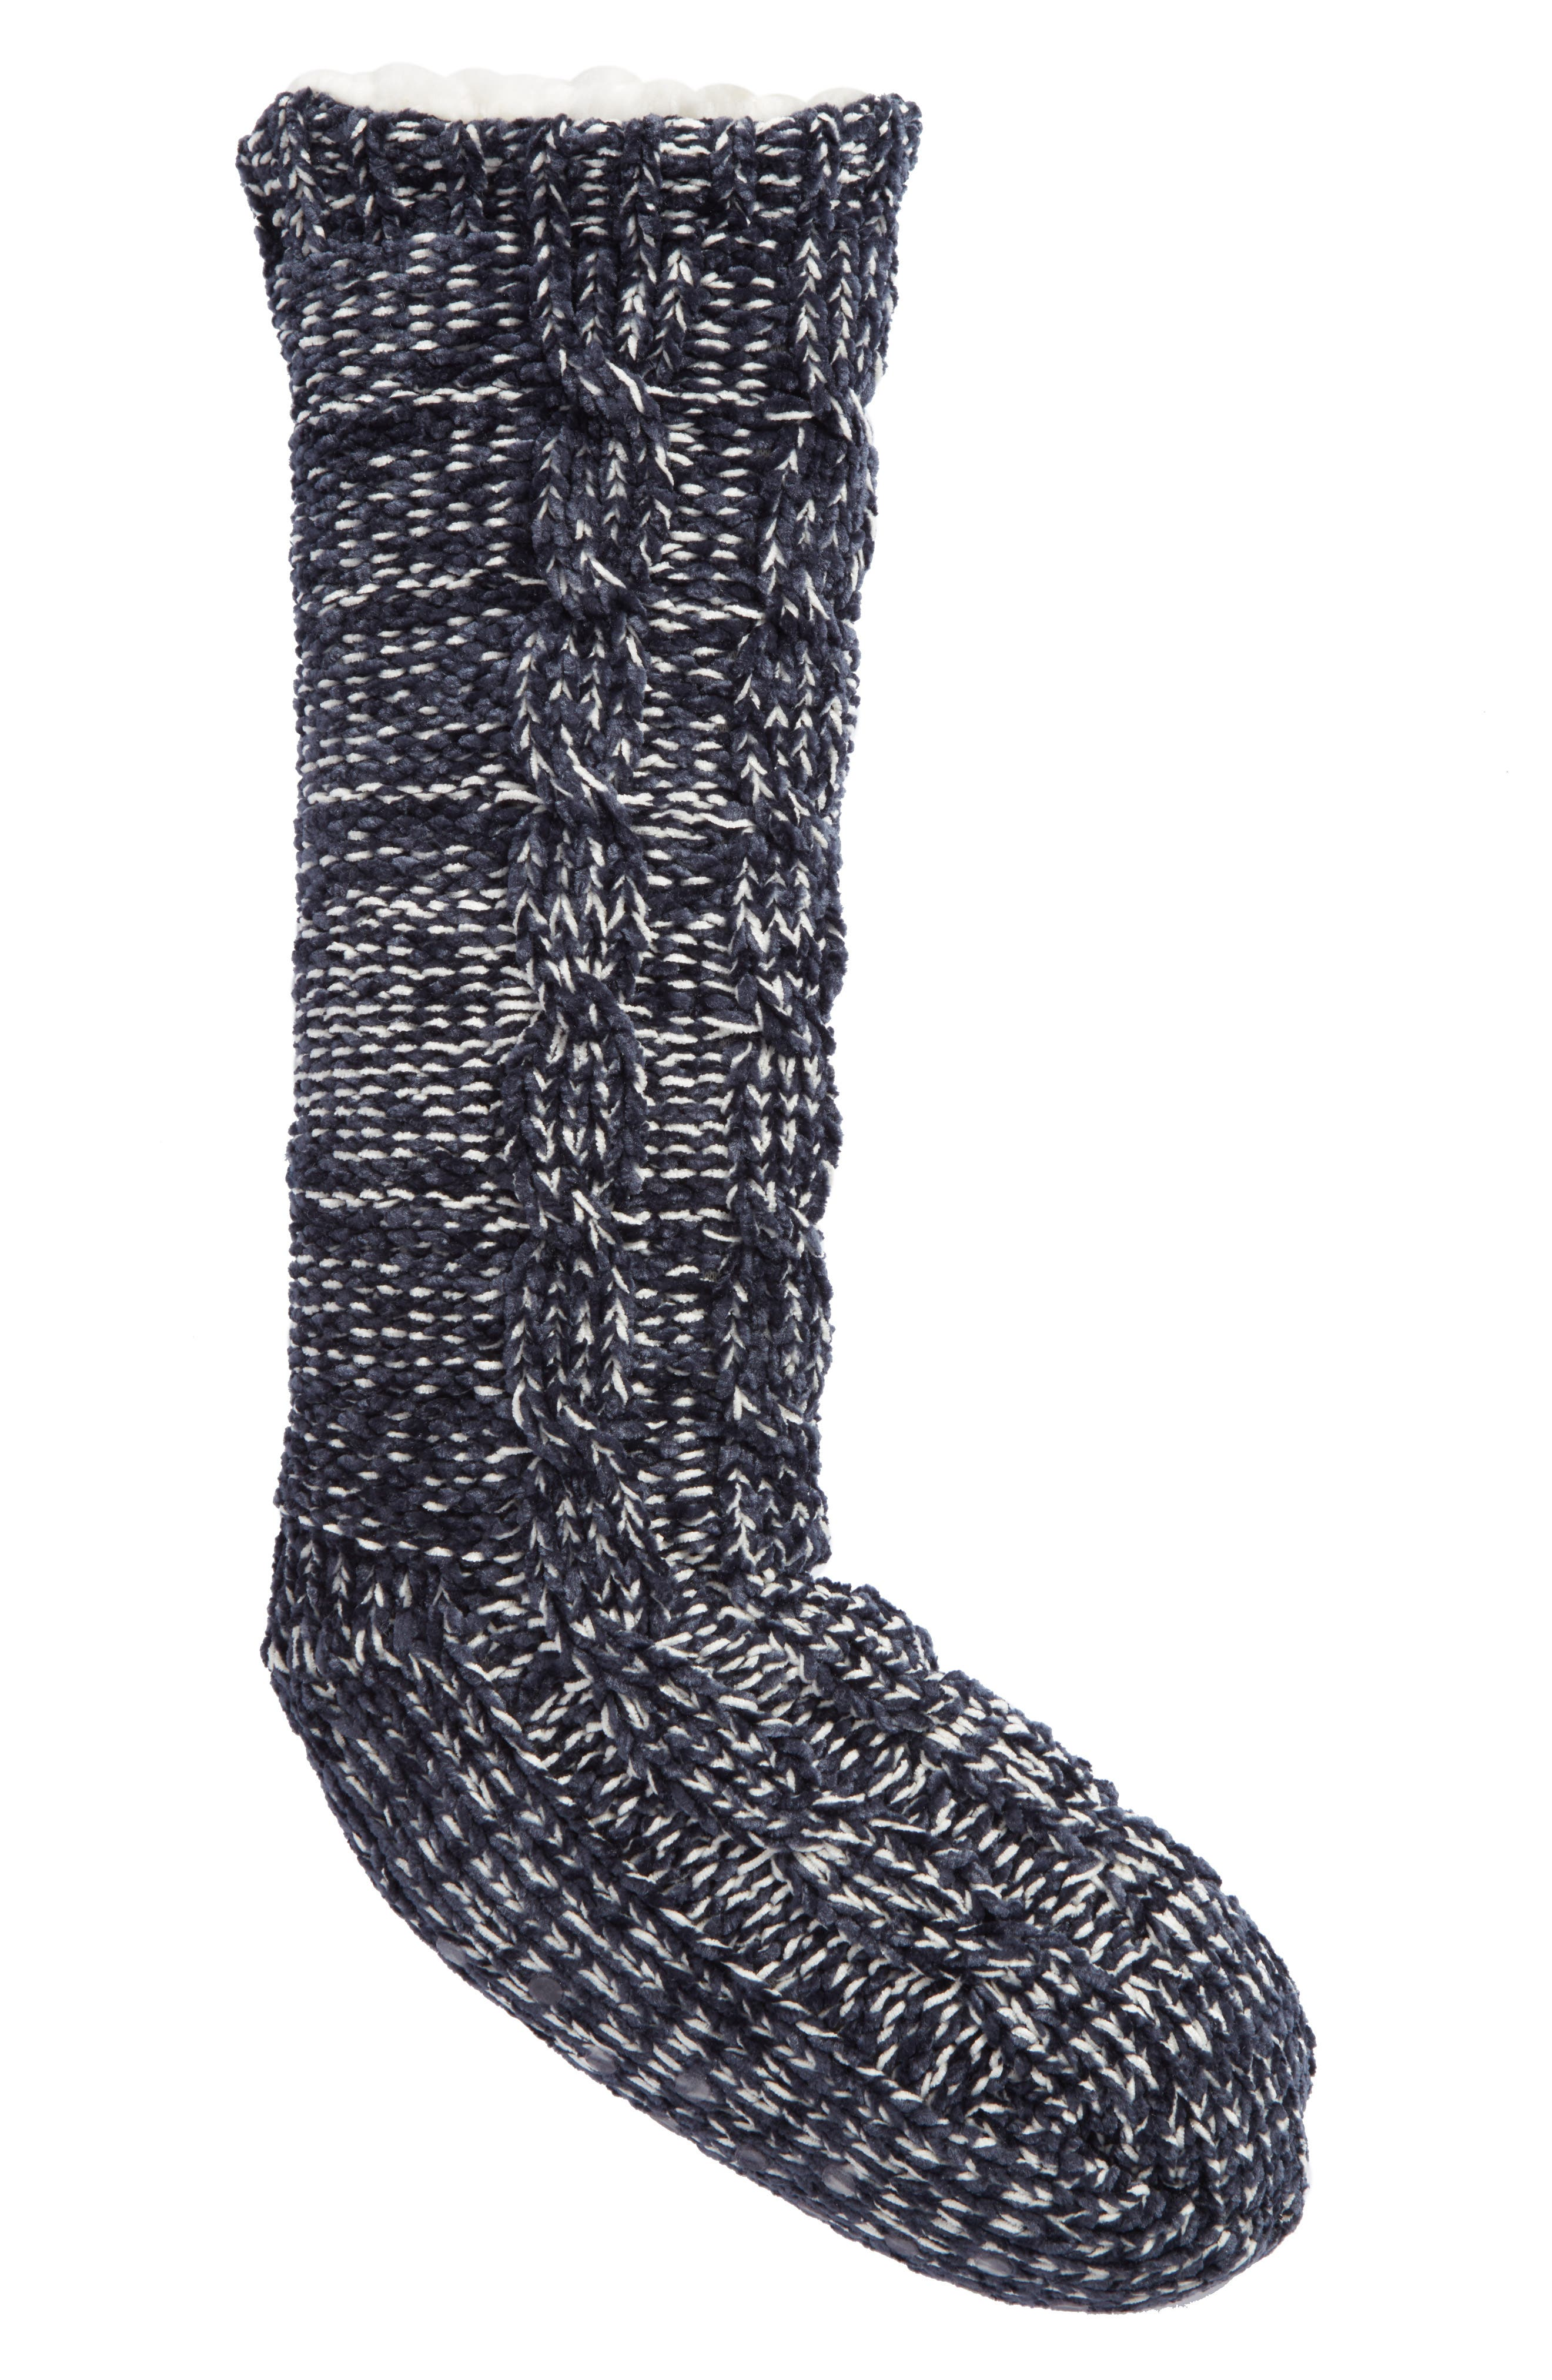 Cable Knit Slipper Socks,                         Main,                         color, Navy